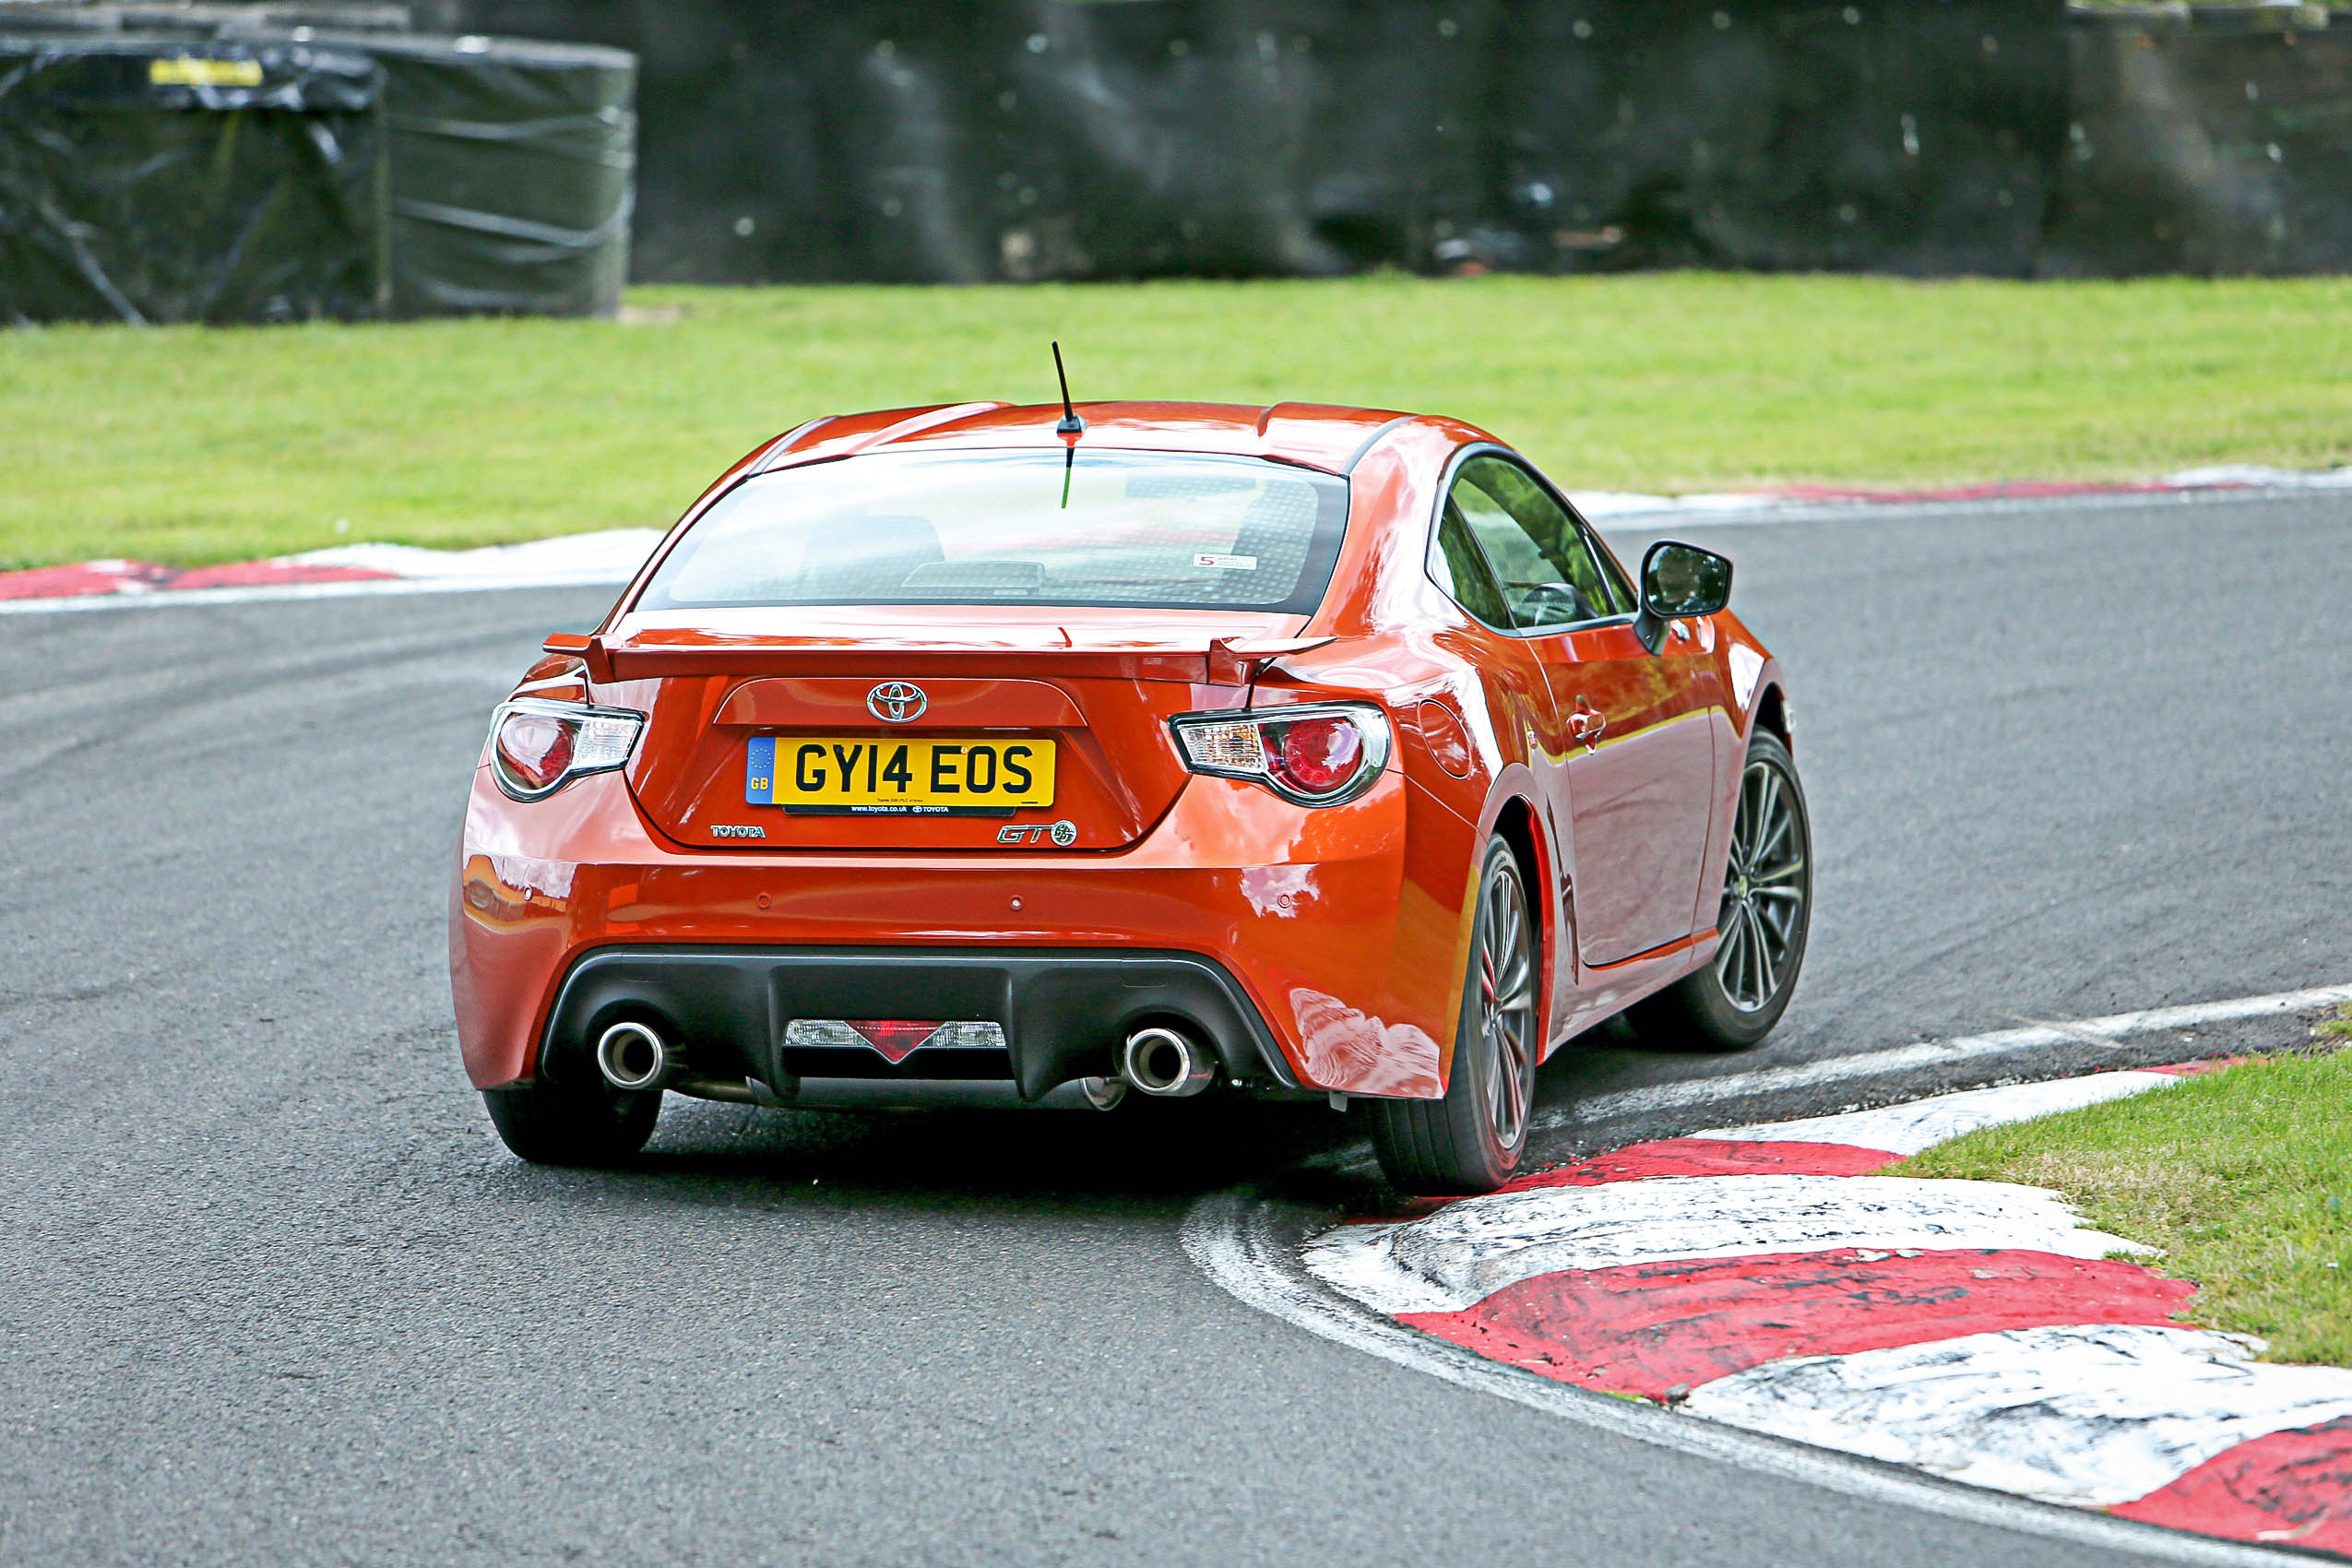 used car buying guide toyota gt86 autocar. Black Bedroom Furniture Sets. Home Design Ideas